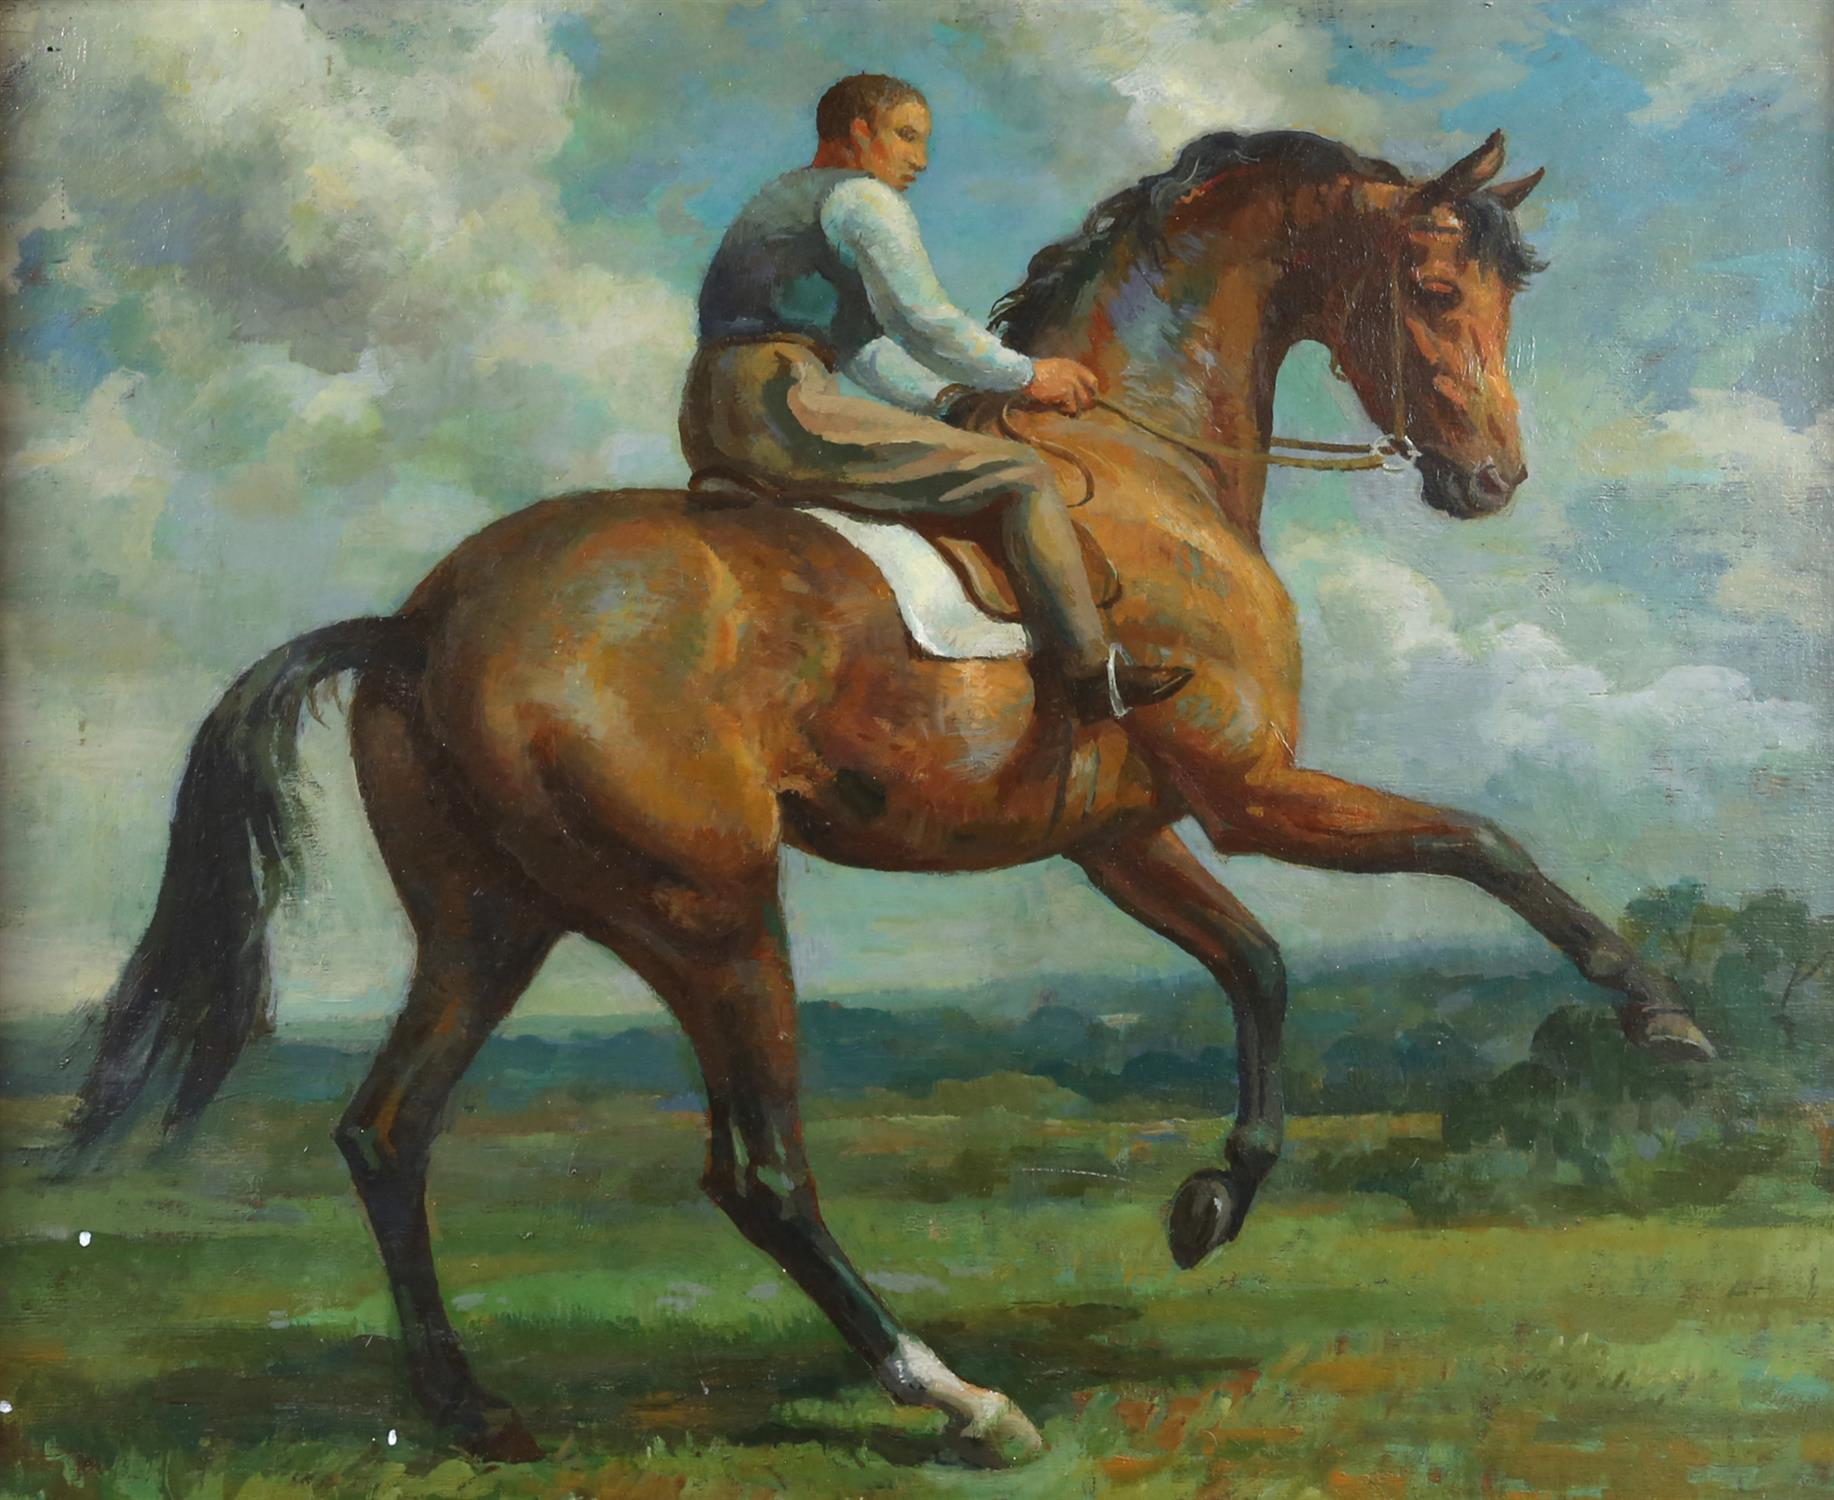 § Lionel Ellis (1903-1988) Rider on a Spirited Horse. Oil on board, indistinctly signed lower right